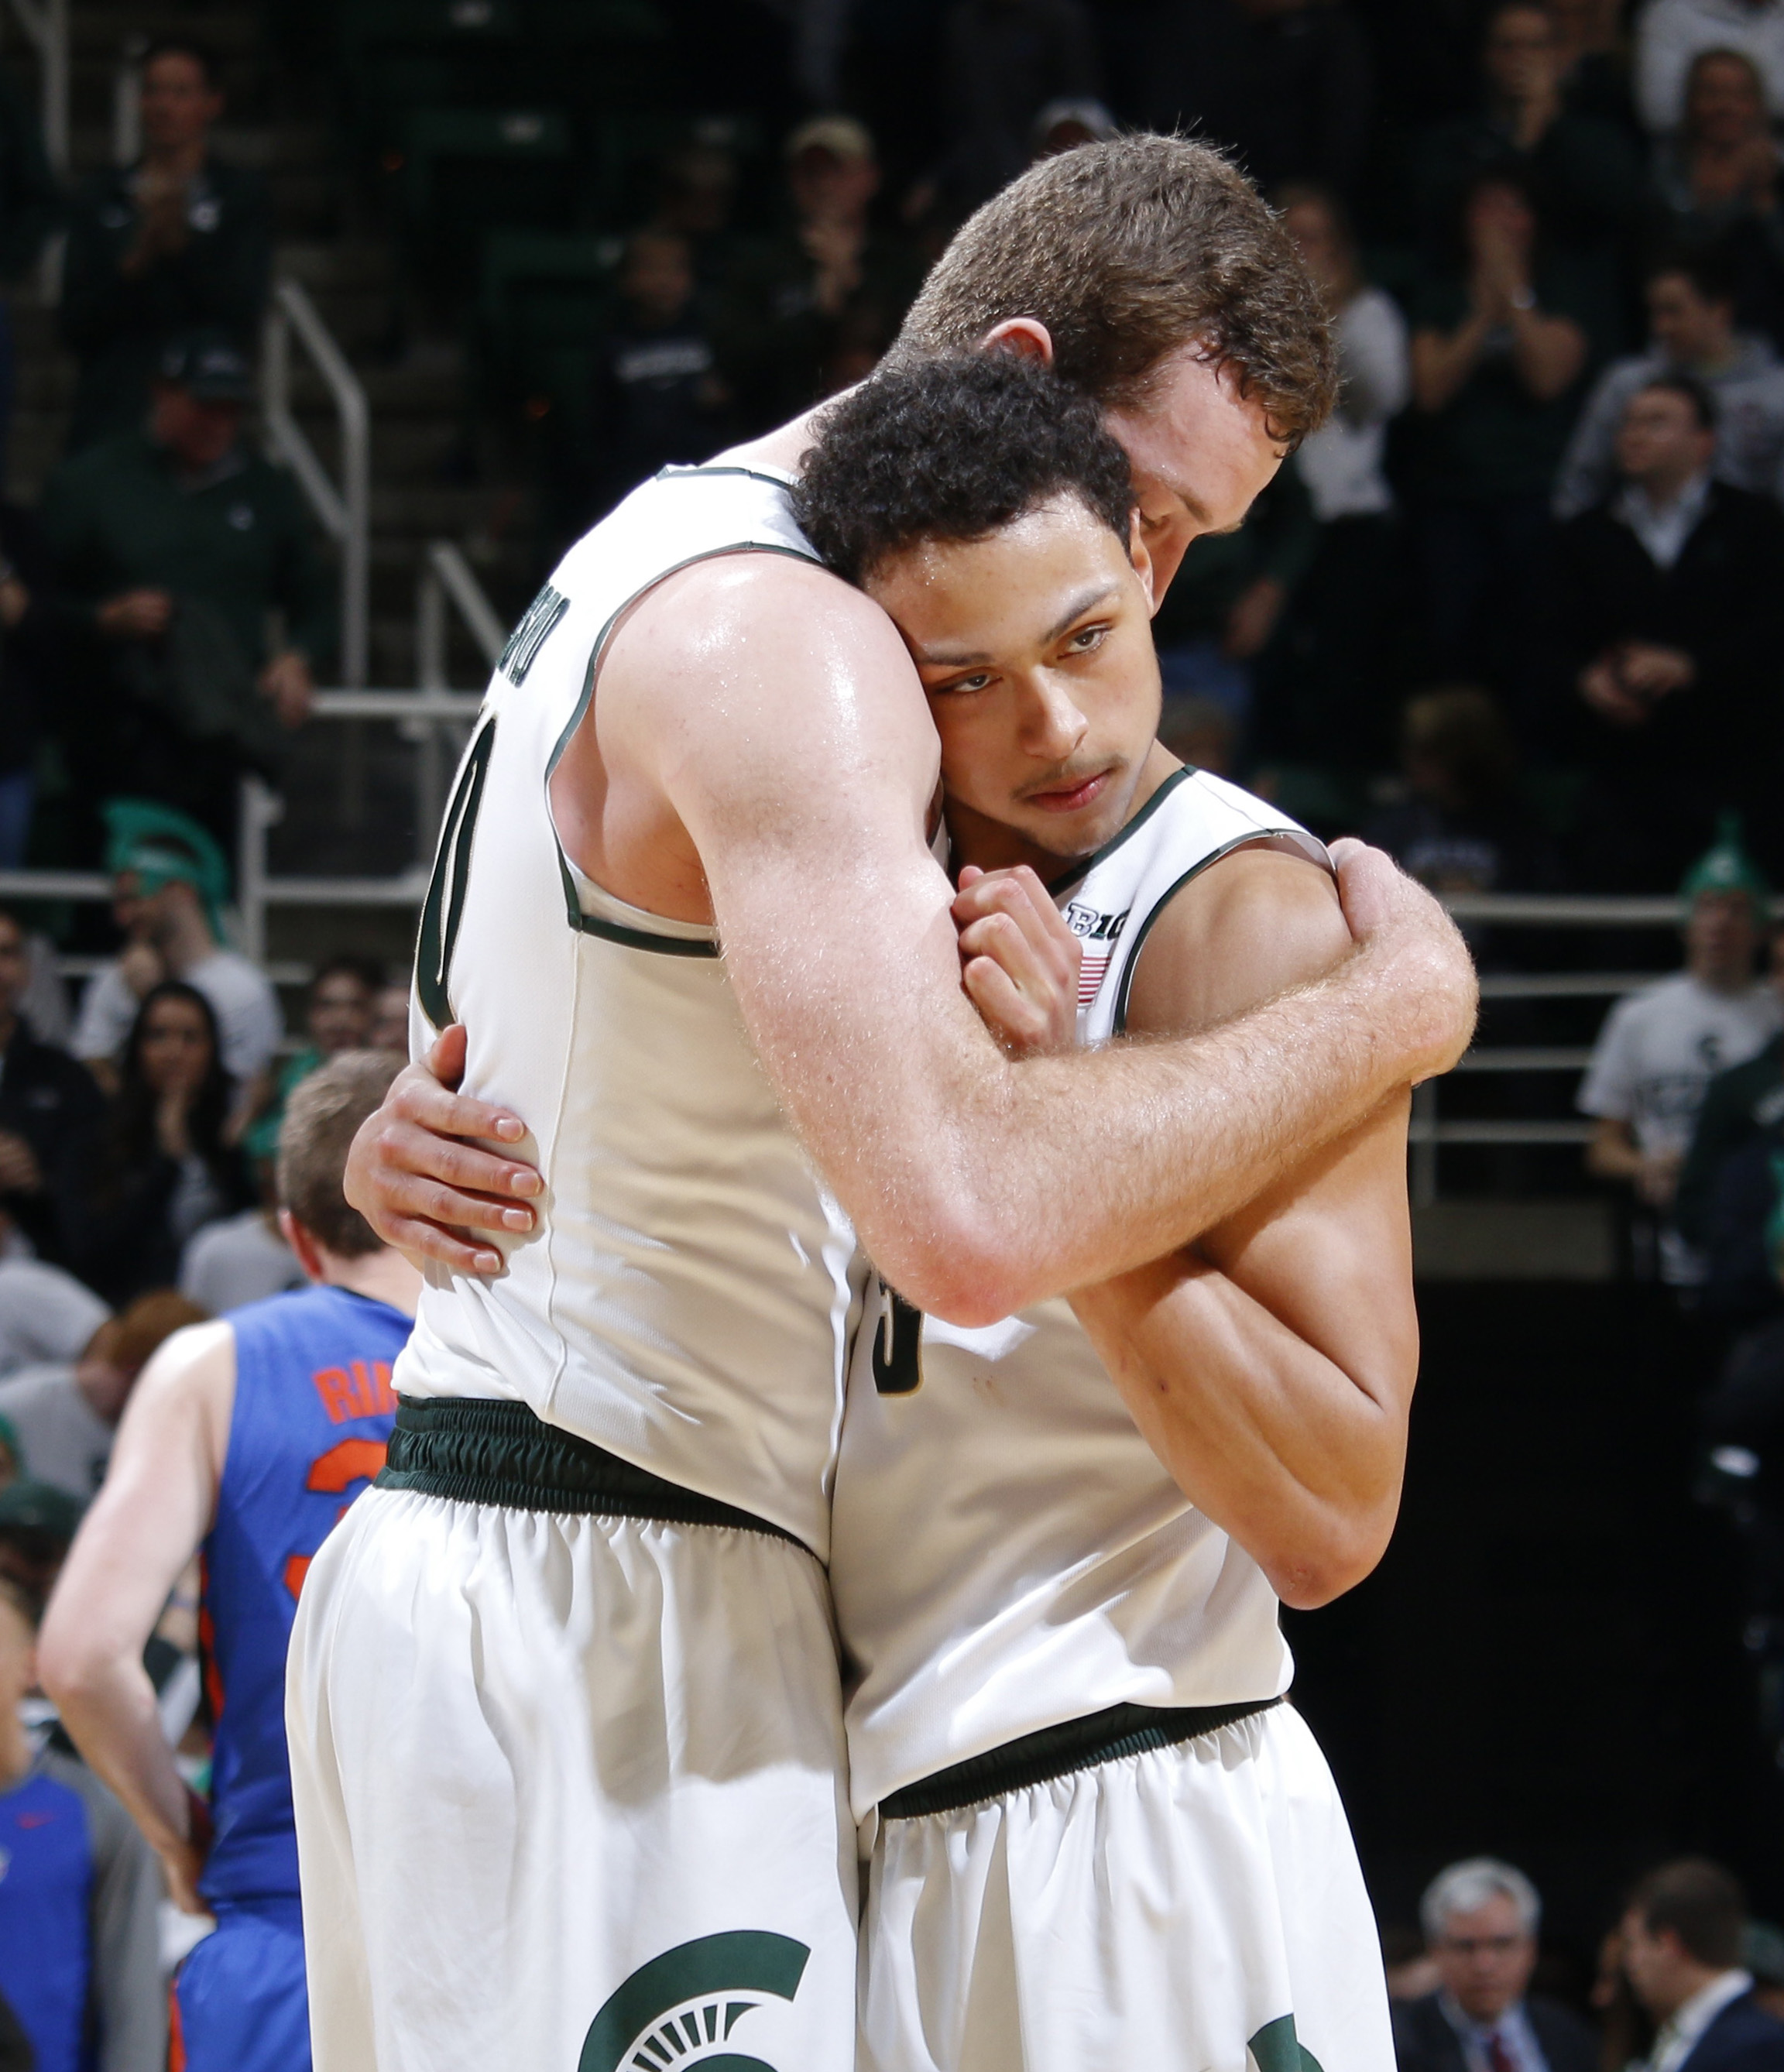 Michigan State's Bryn Forbes, right, and Matt Costello embrace following their 58-52 win over Florida in an NCAA college basketball game, Saturday, Dec. 12, 2015, in East Lansing, Mich. (AP Photo/Al Goldis)